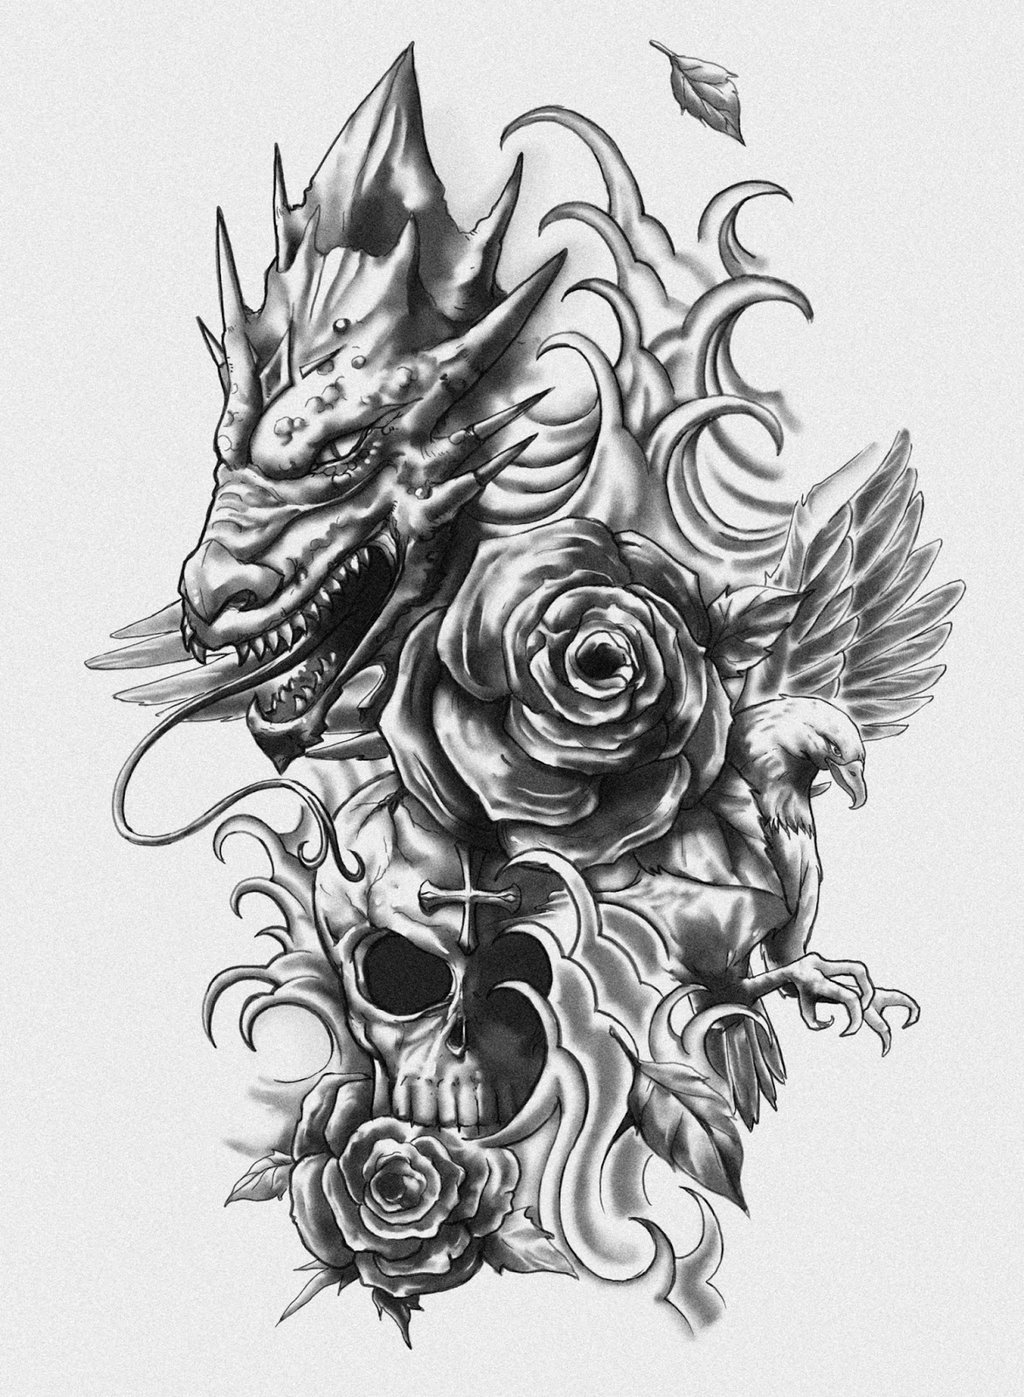 Grey Rose Flowers And Dragon Skull Tattoo Design